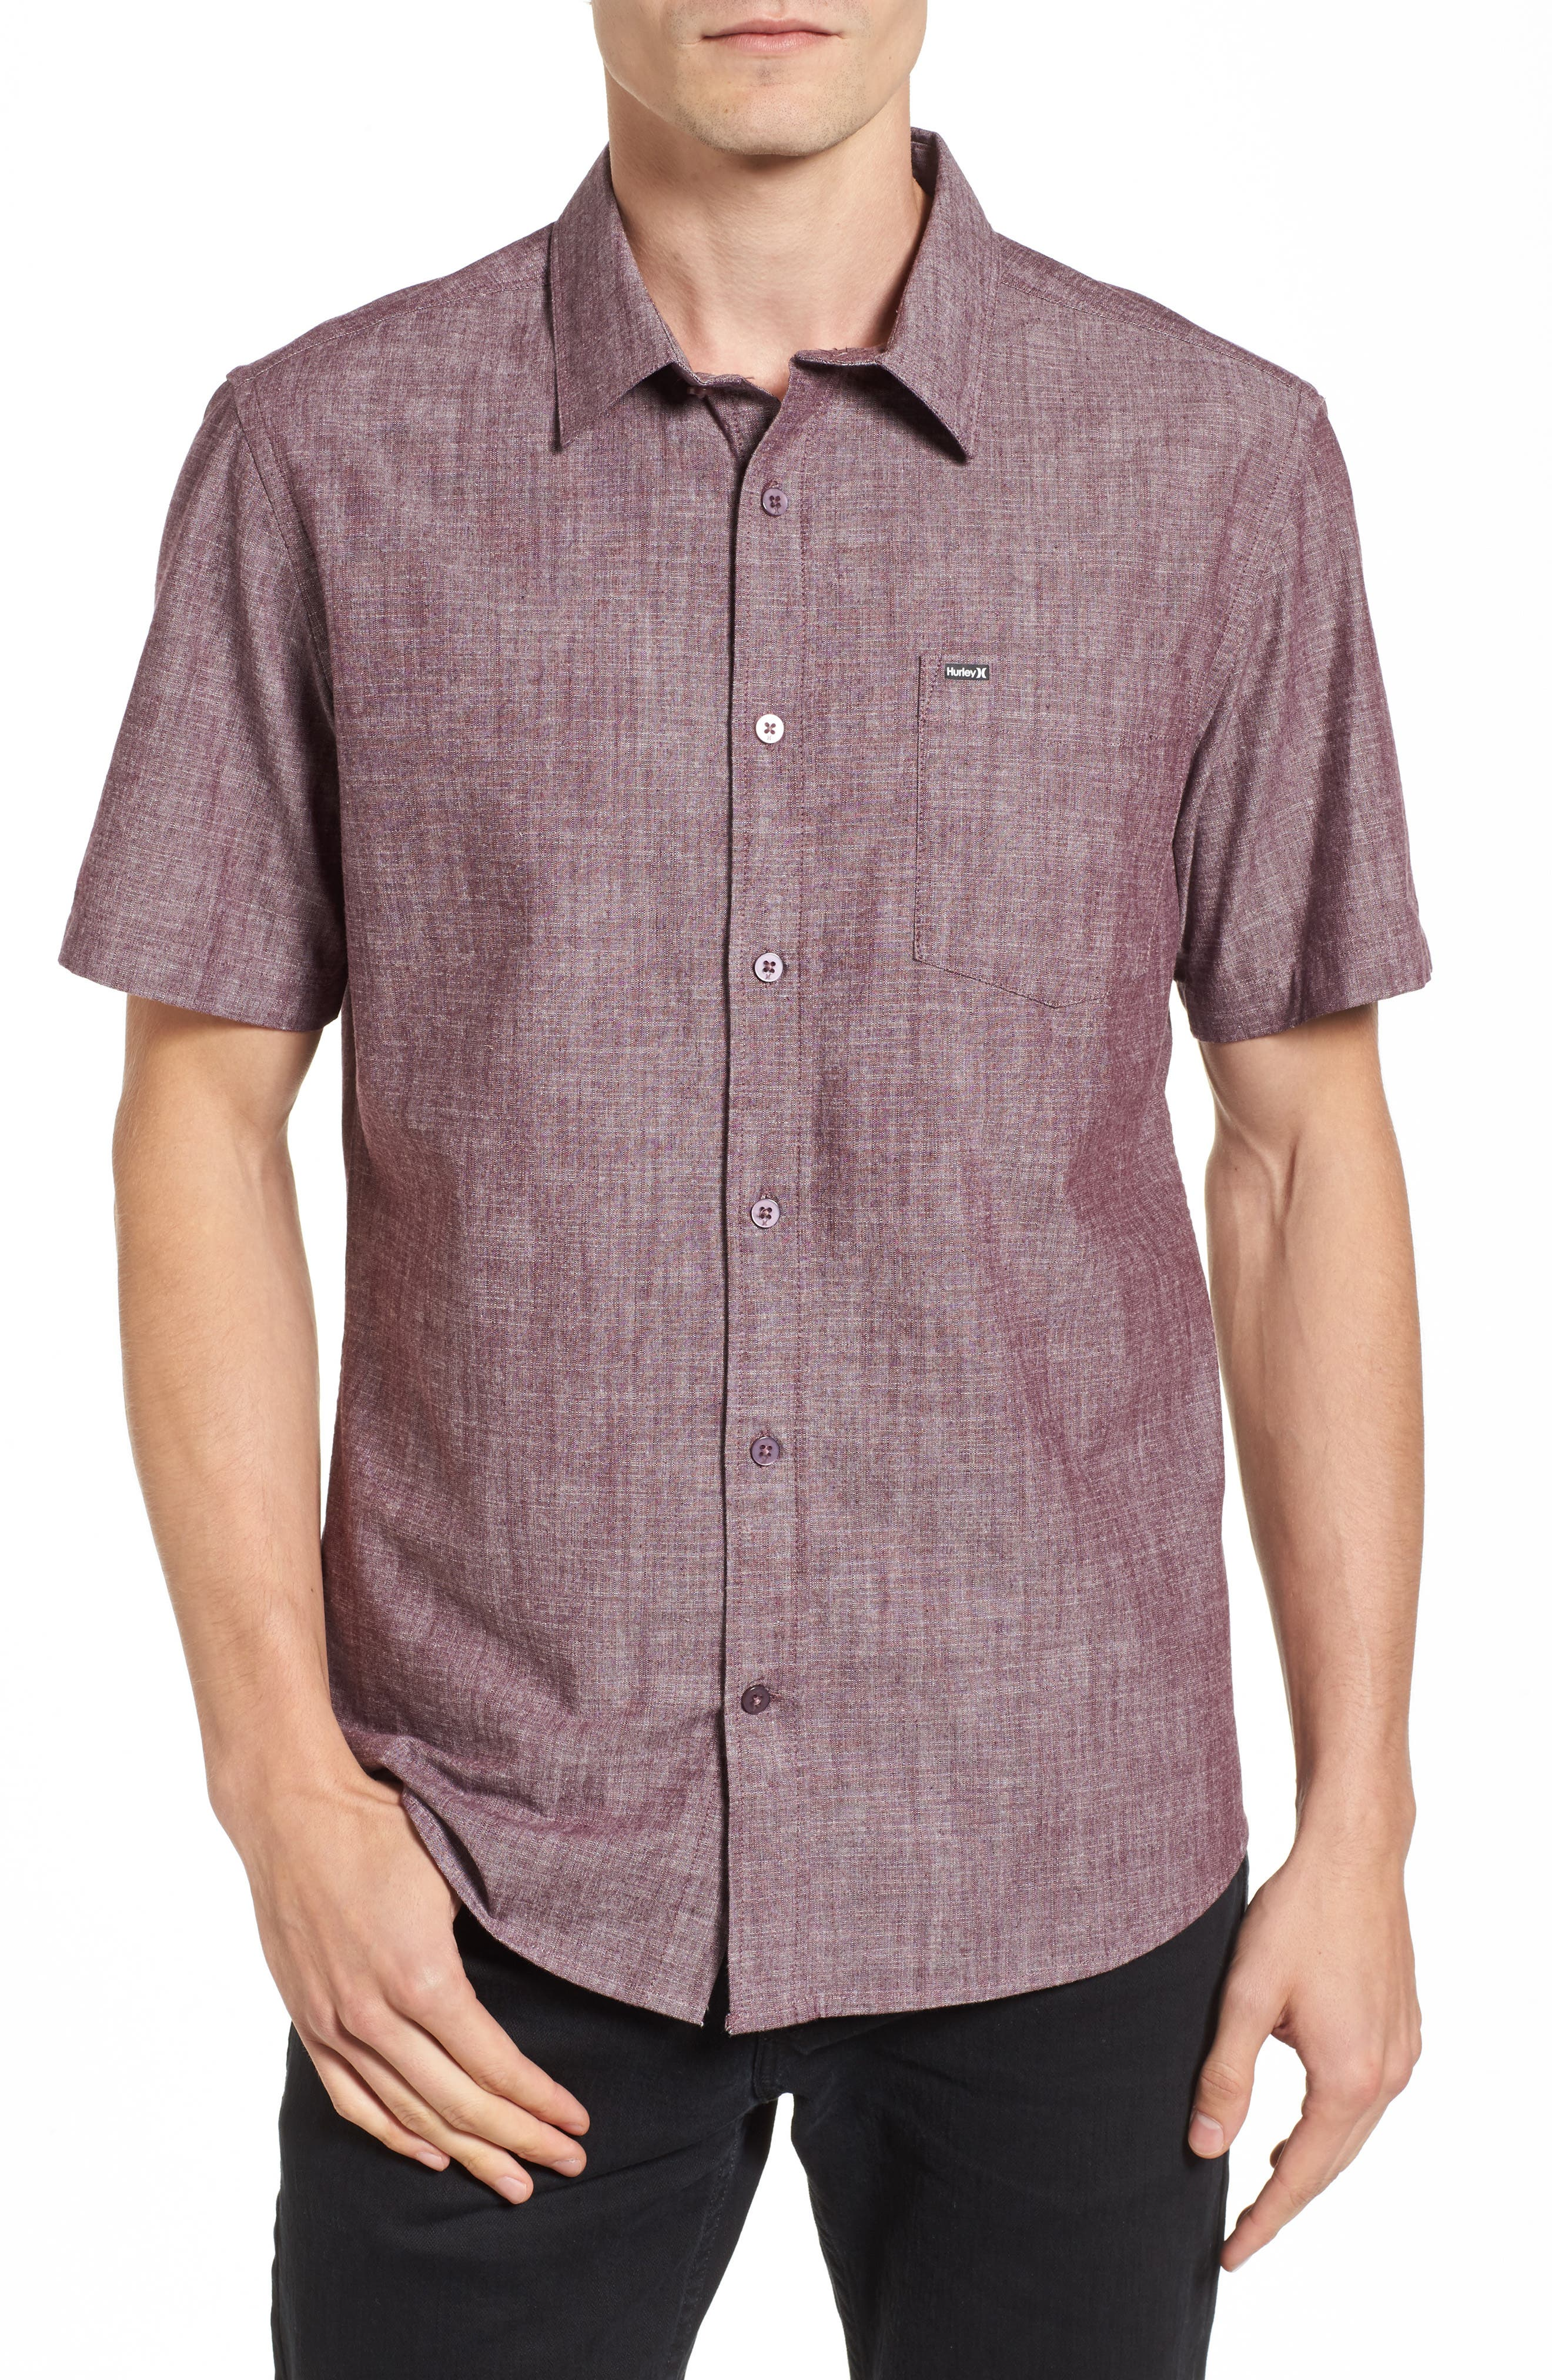 Alternate Image 1 Selected - Hurley O & O 3.0 Woven Shirt